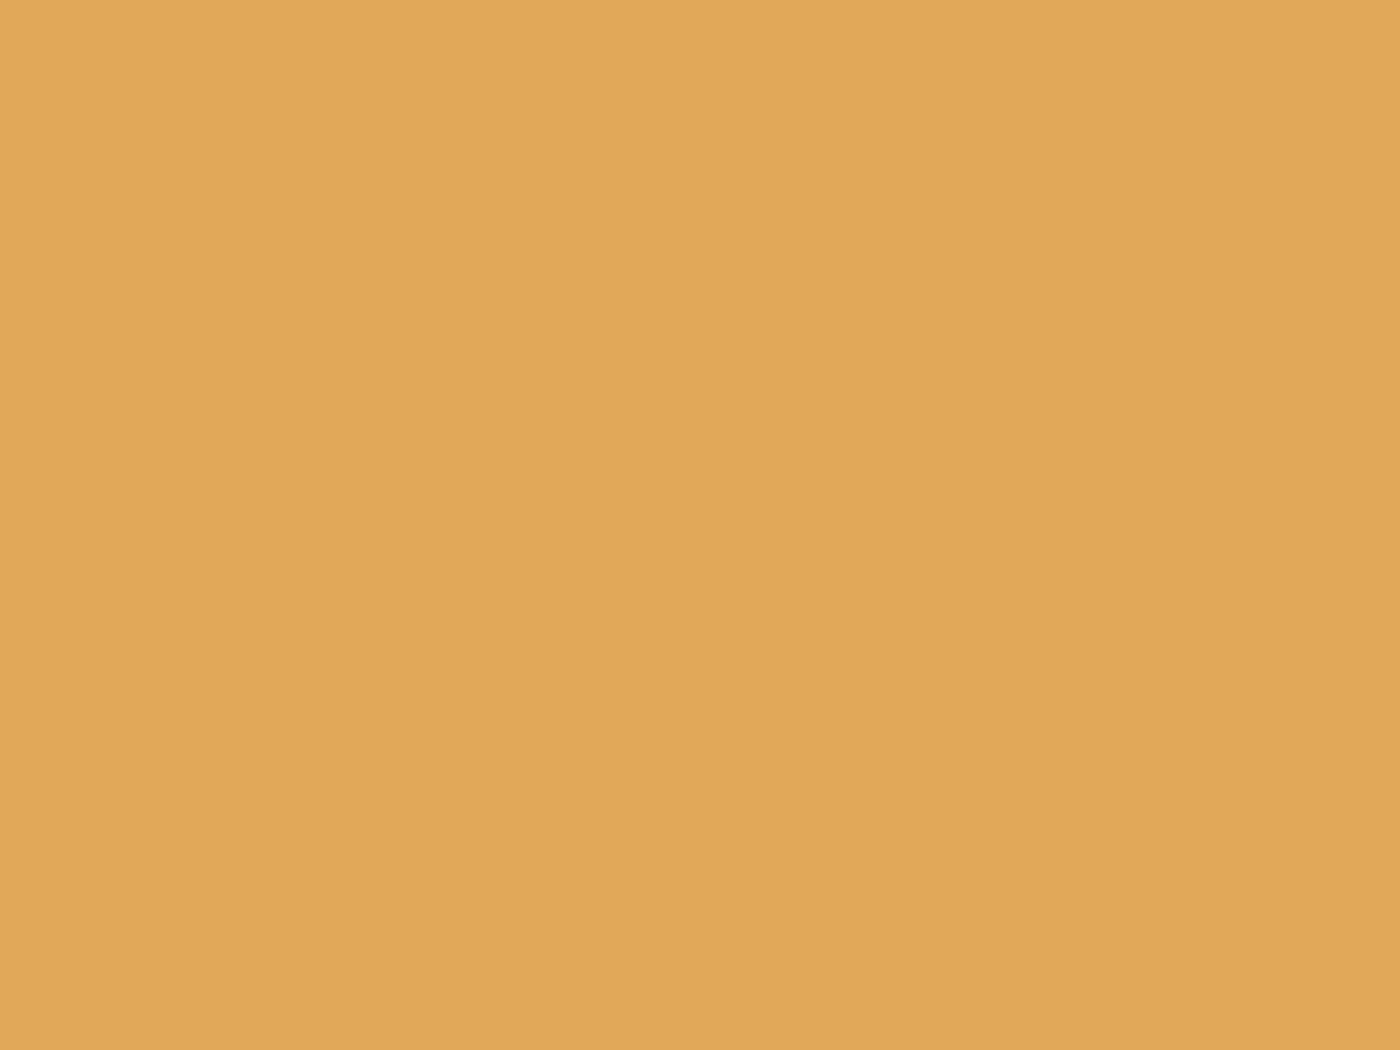 1400x1050 Indian Yellow Solid Color Background